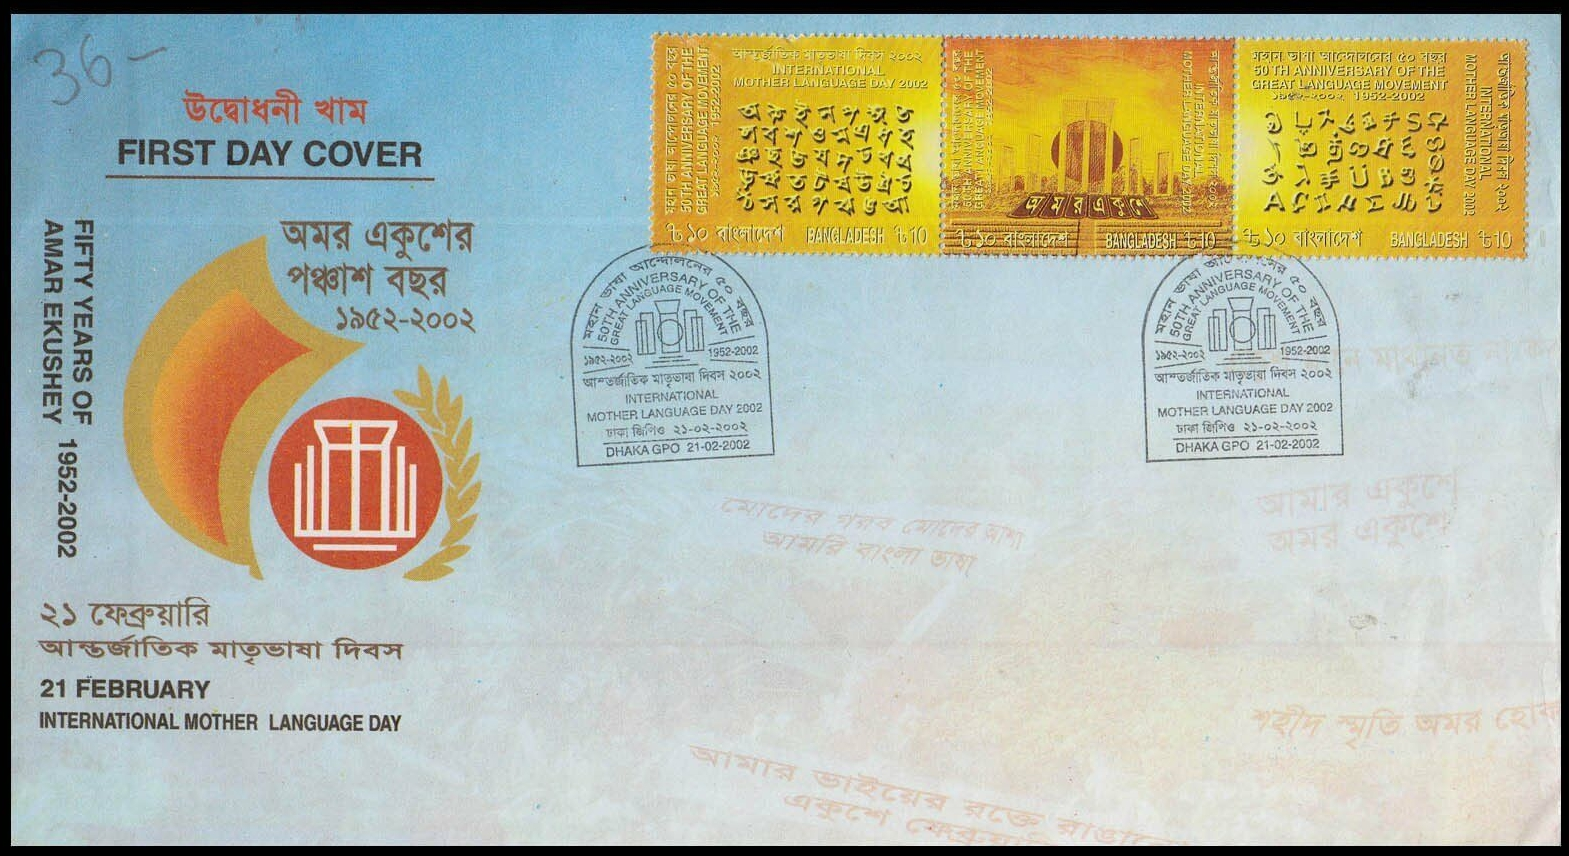 Bangladesh - Scott #646 (2002) first day cover